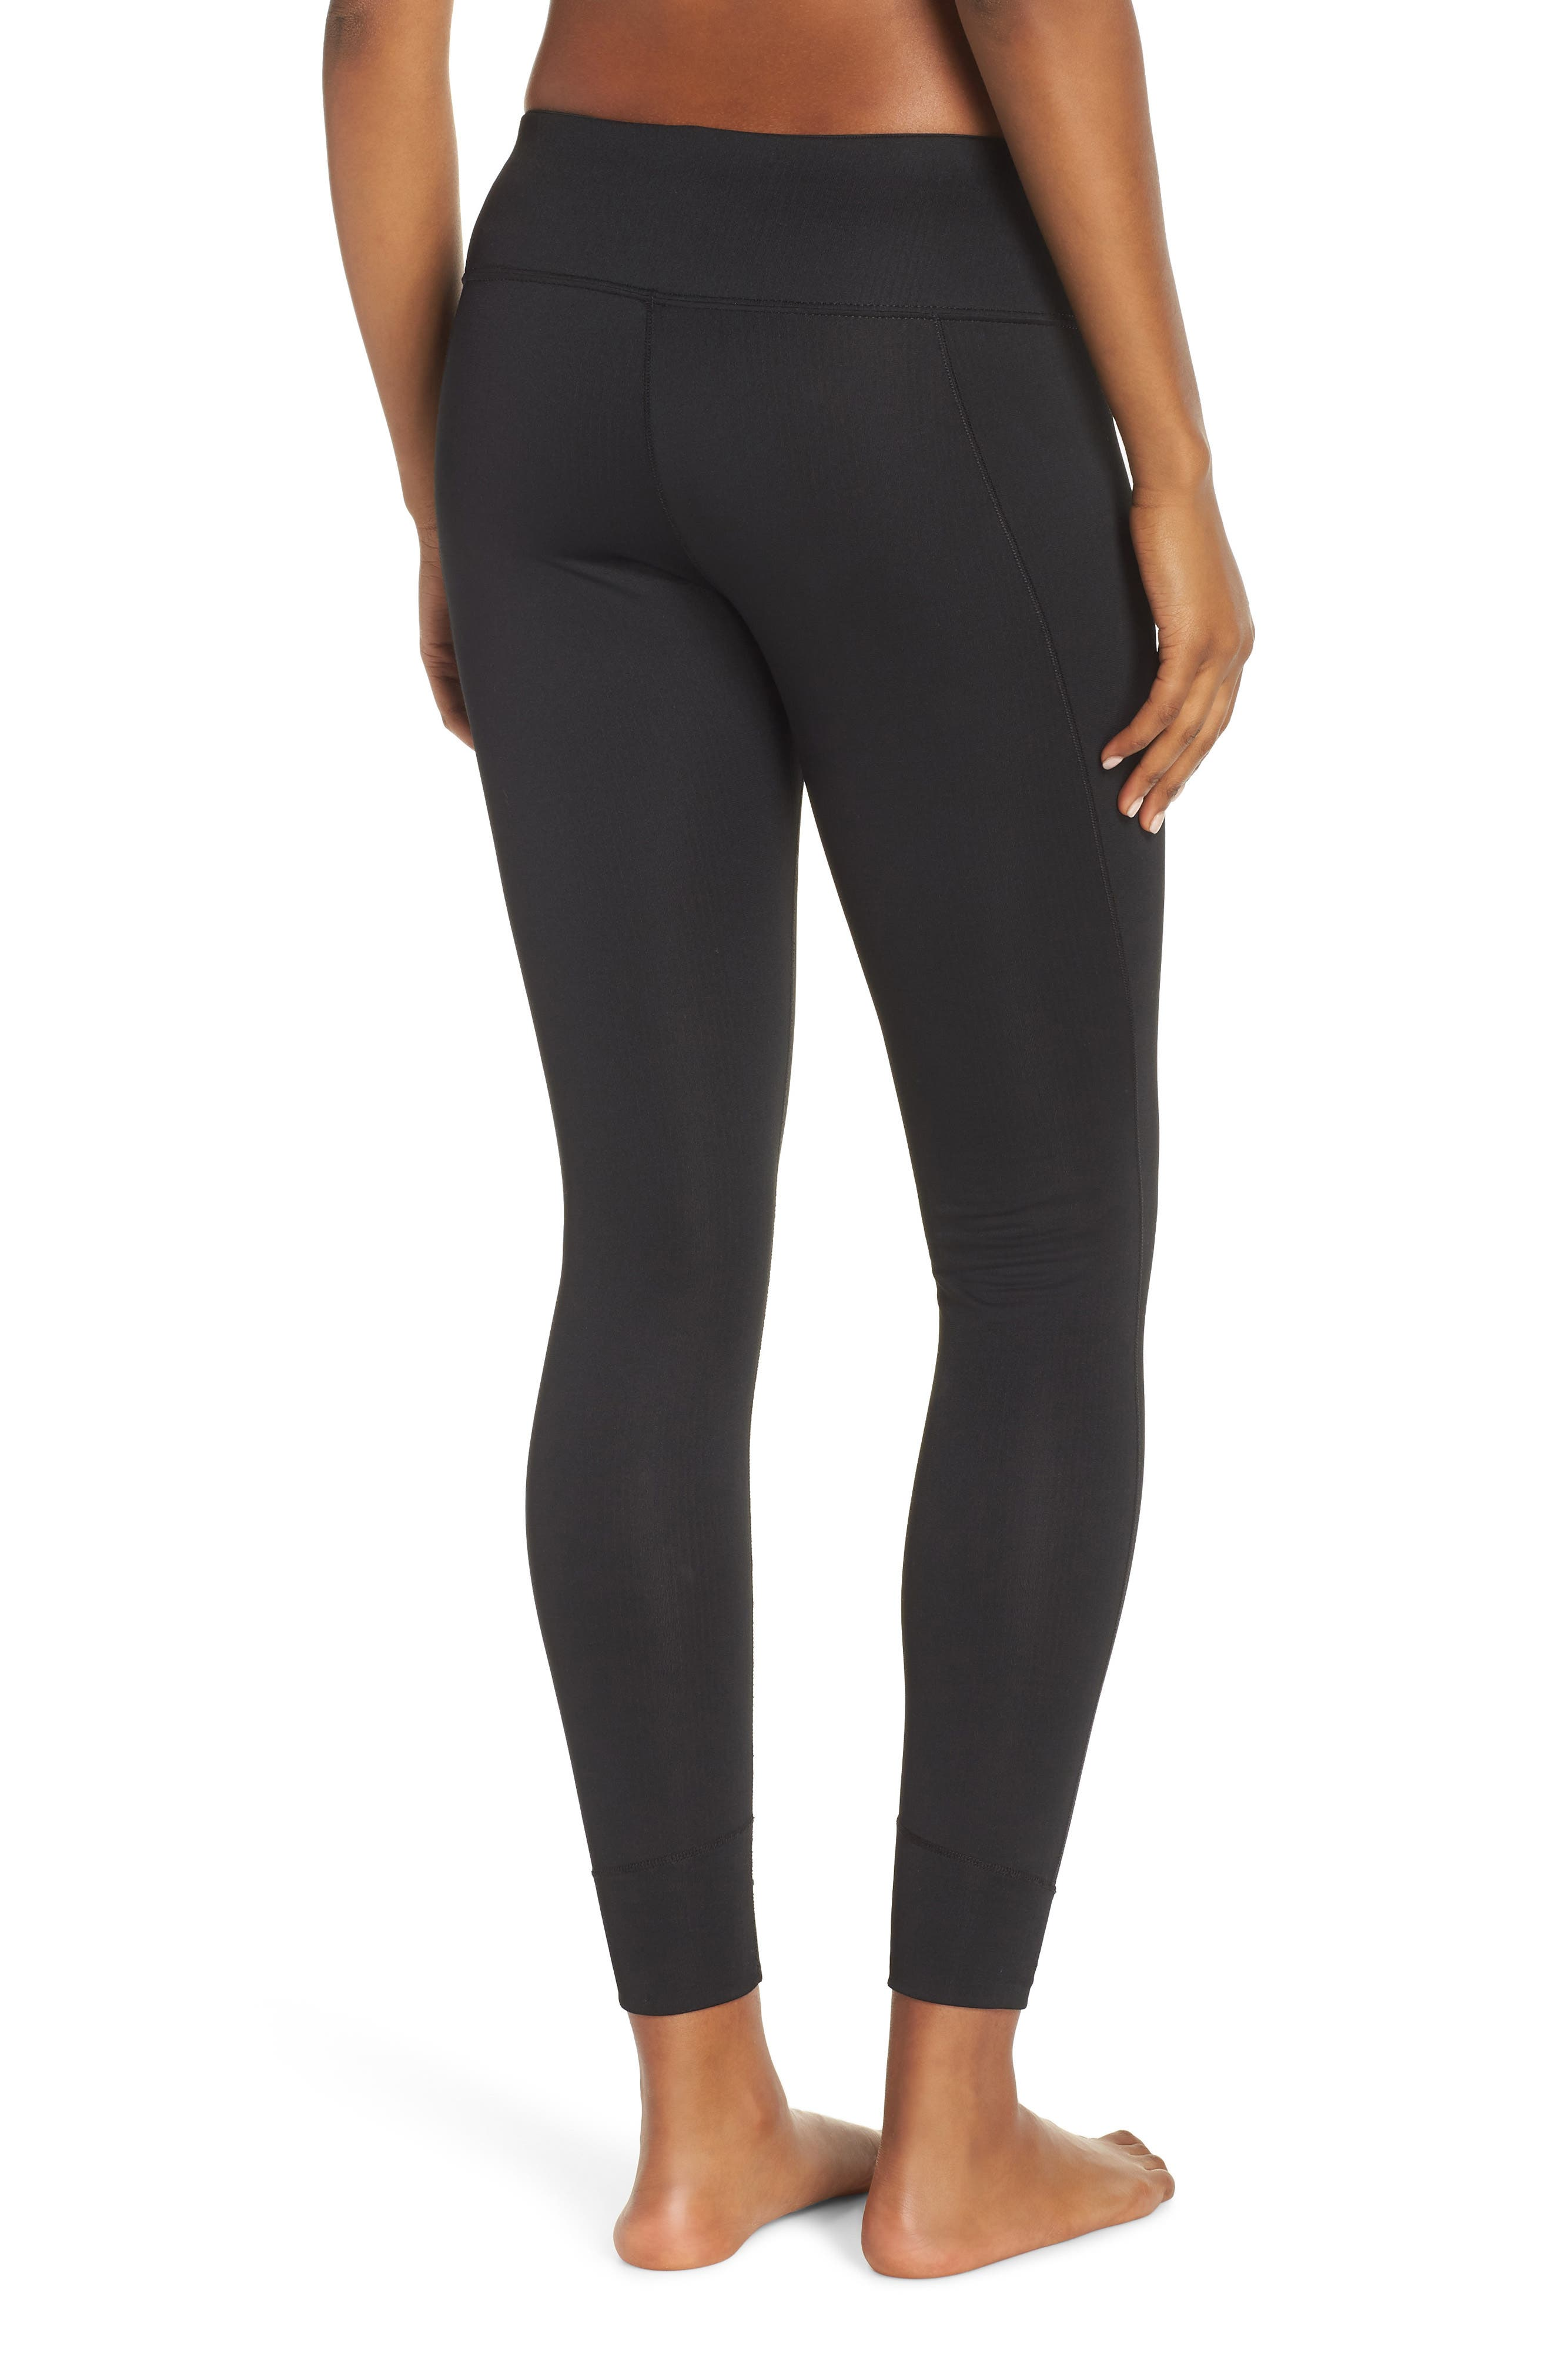 Capilene Midweight Base Layer Tights,                             Alternate thumbnail 2, color,                             BLACK